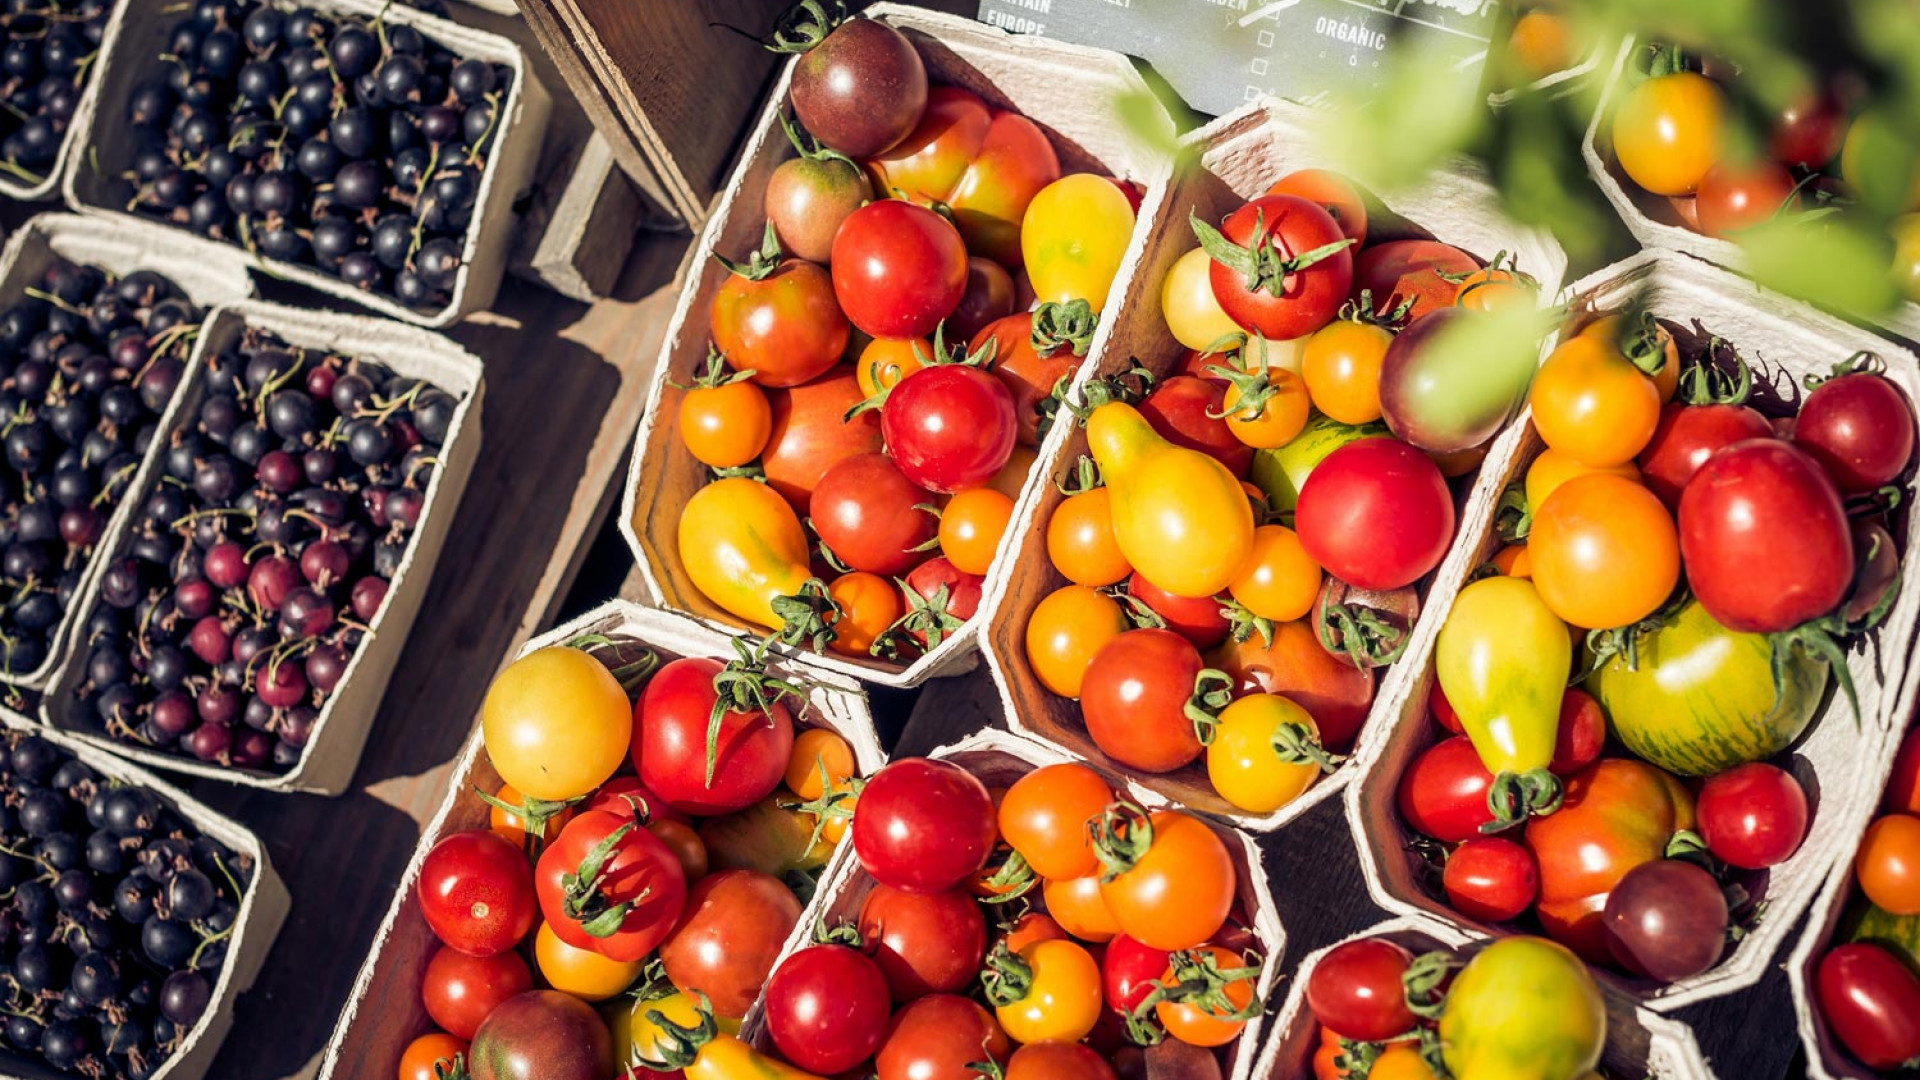 Tomatoes at Daylesford